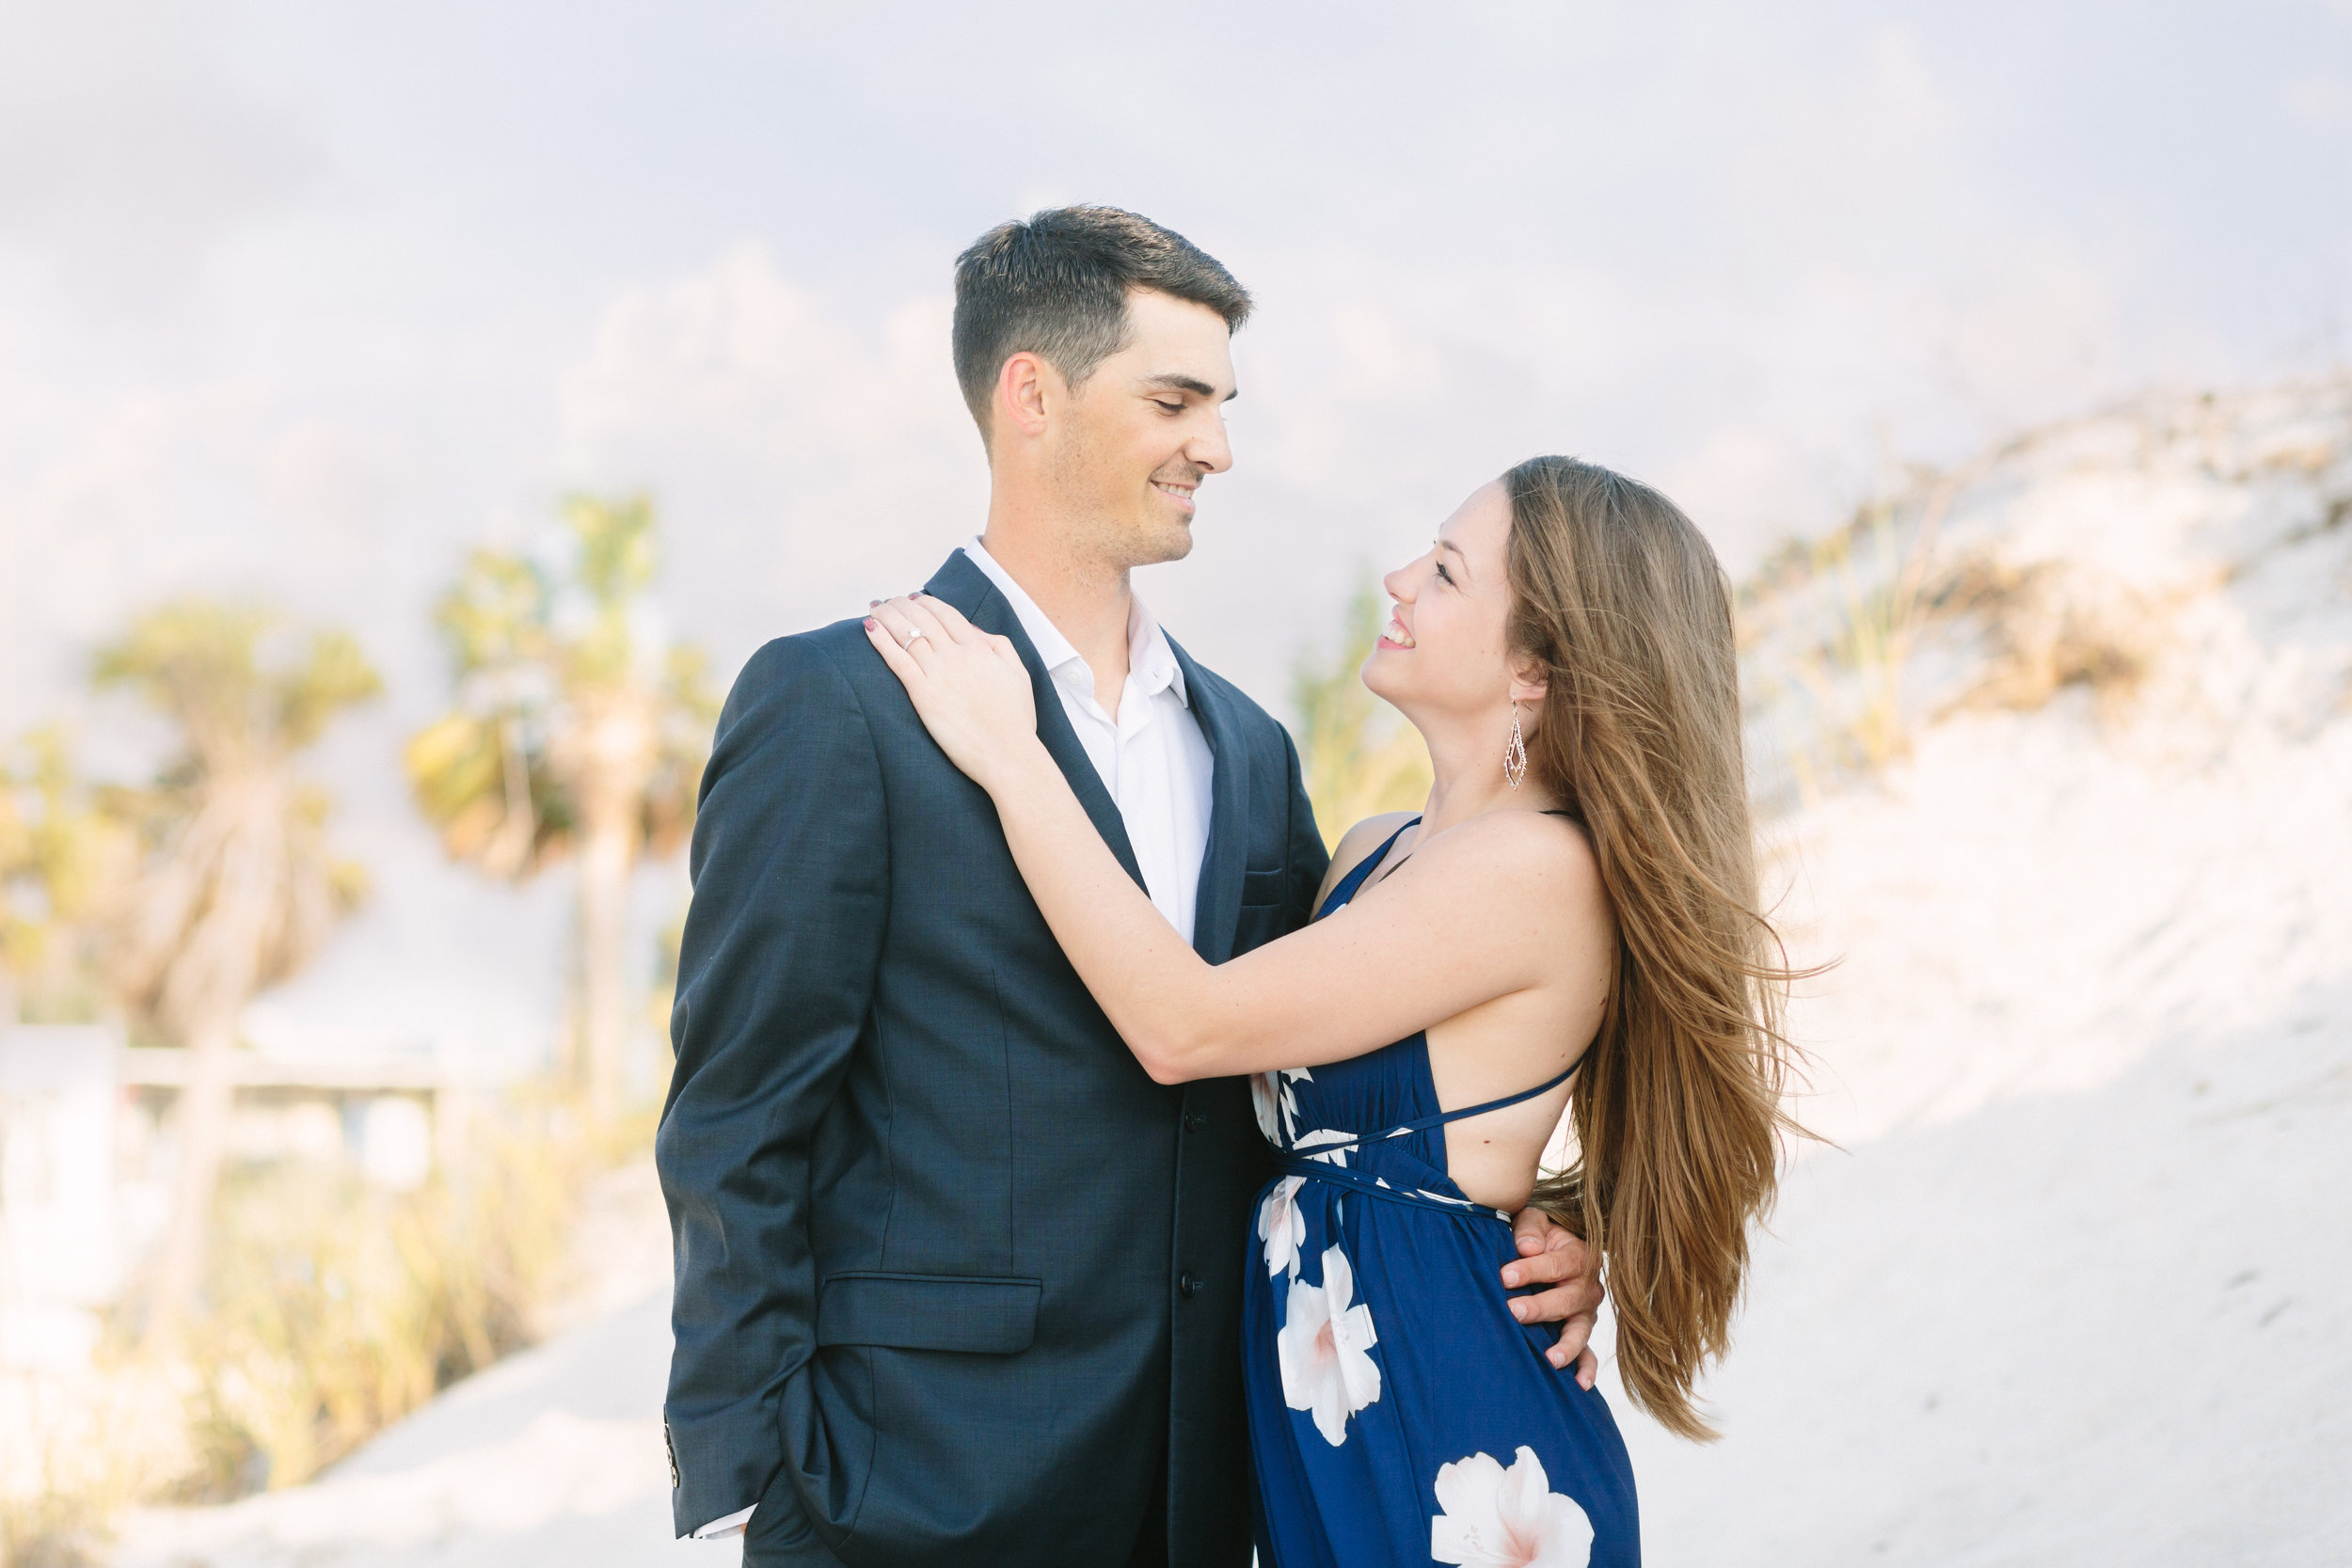 Hoby + Kathryn's Engagement Session at Sandpearl Resort in Clearwater Beach, FL